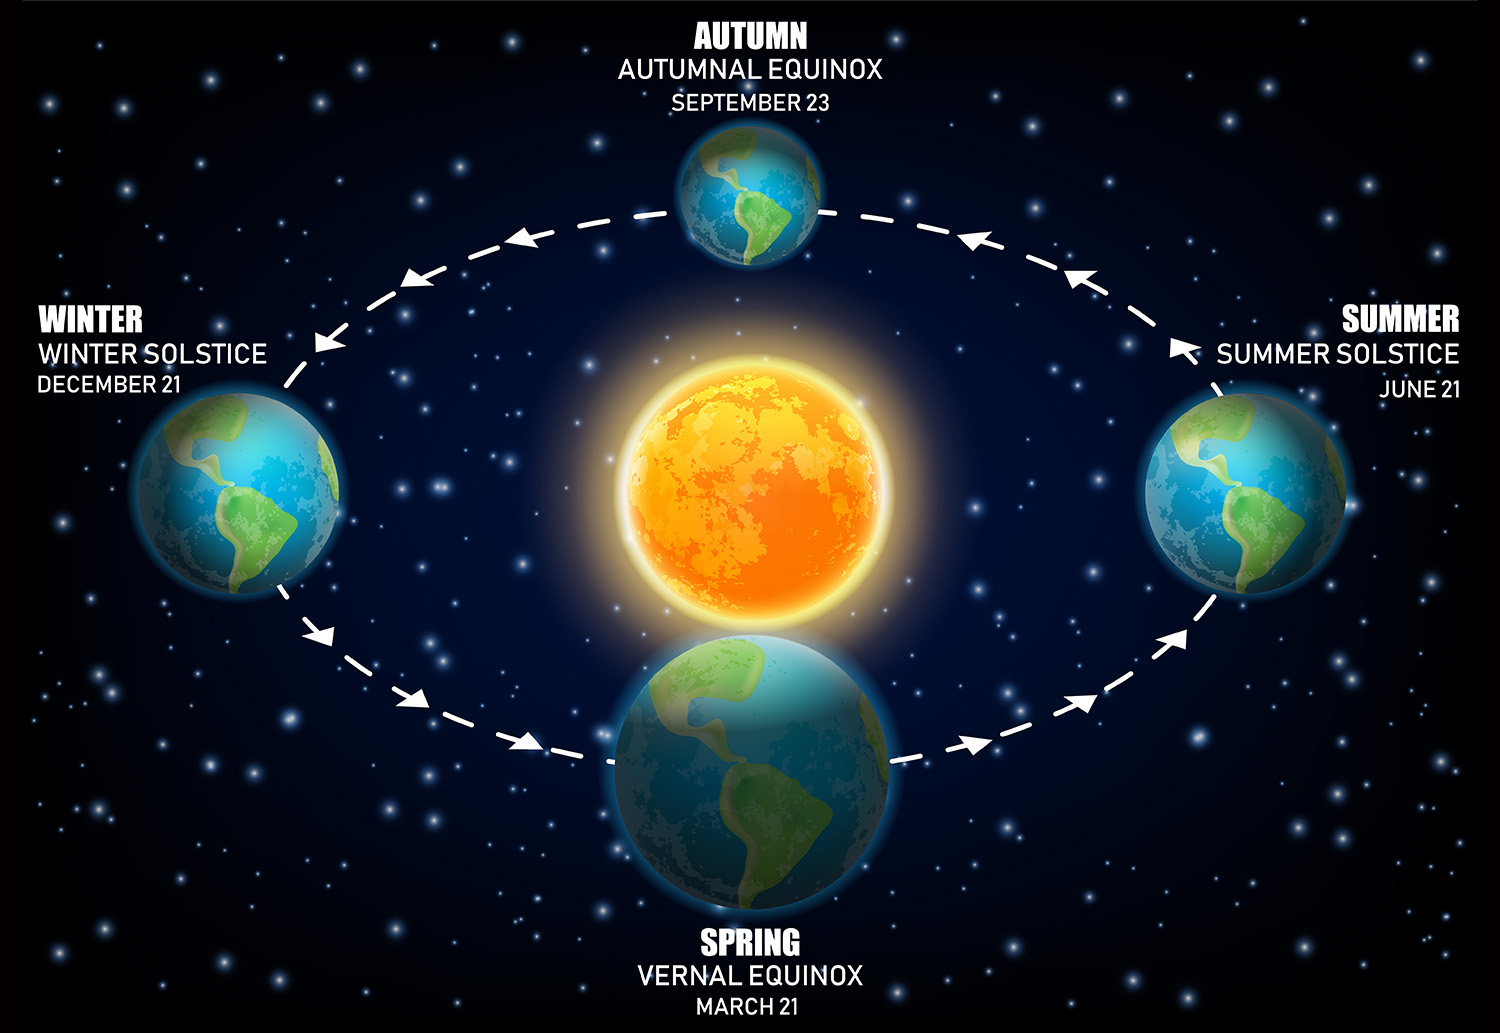 What Is A Solstice And What Is An Equinox And Why Should